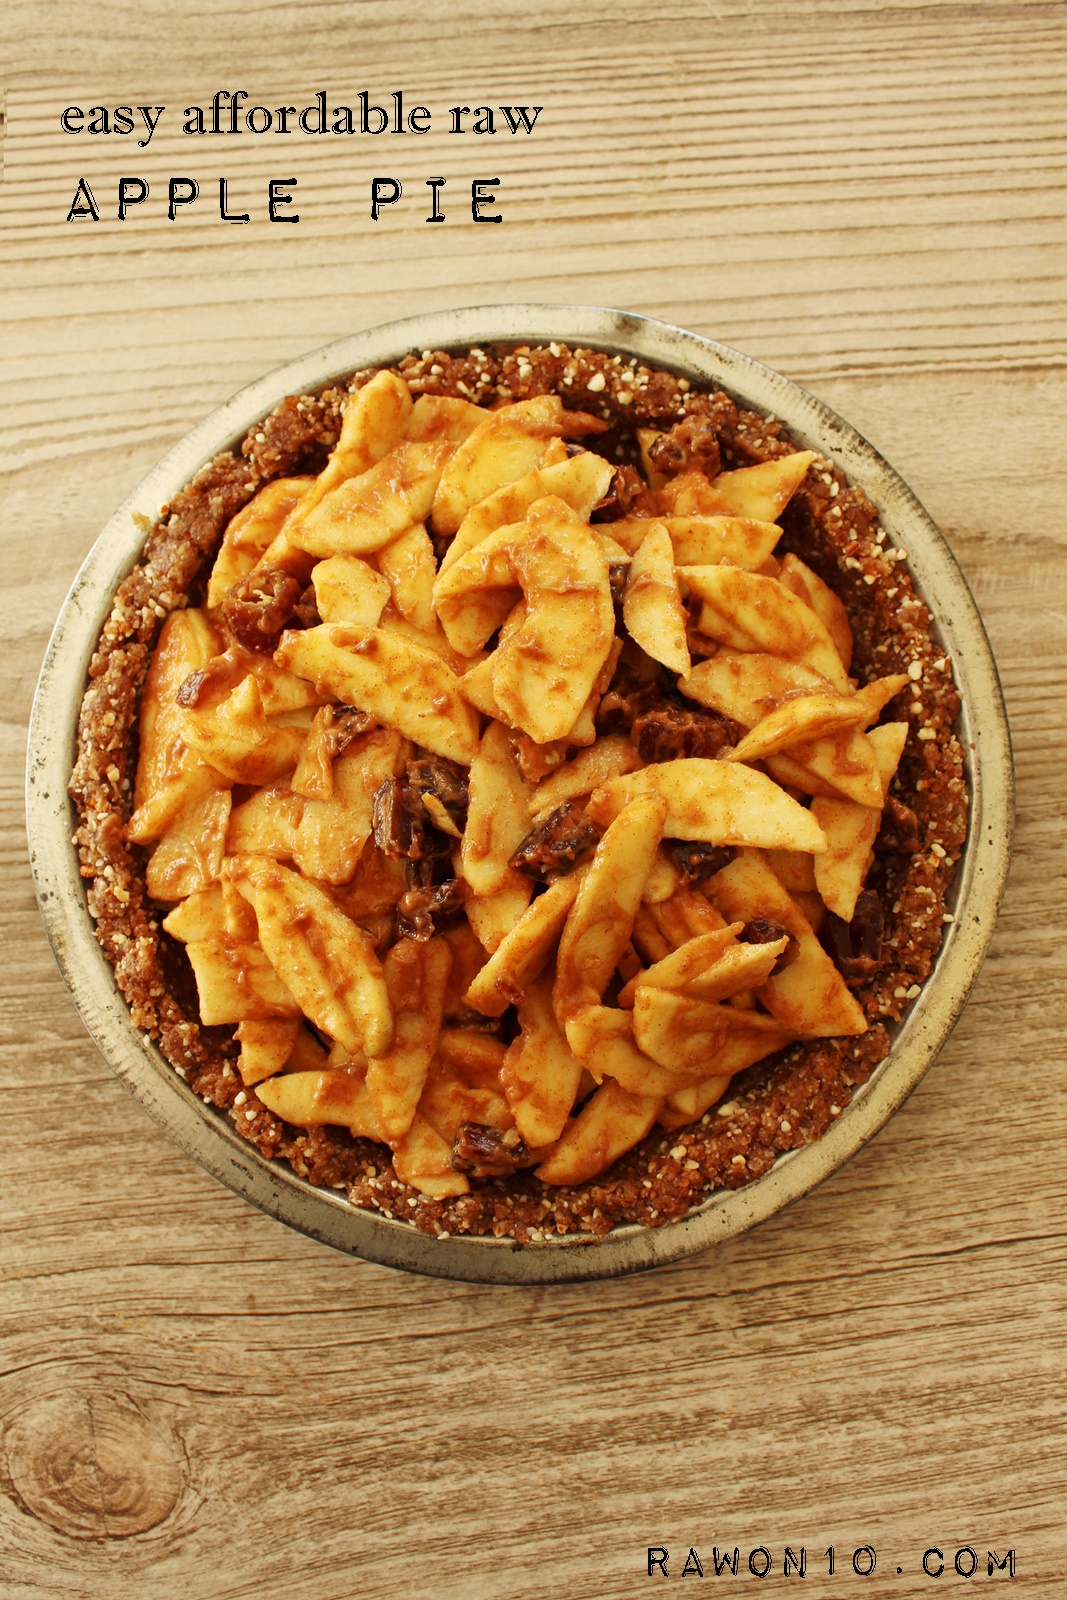 Thin-Crusted Apple Tart With Chipotle Chili Powder Recipes ...